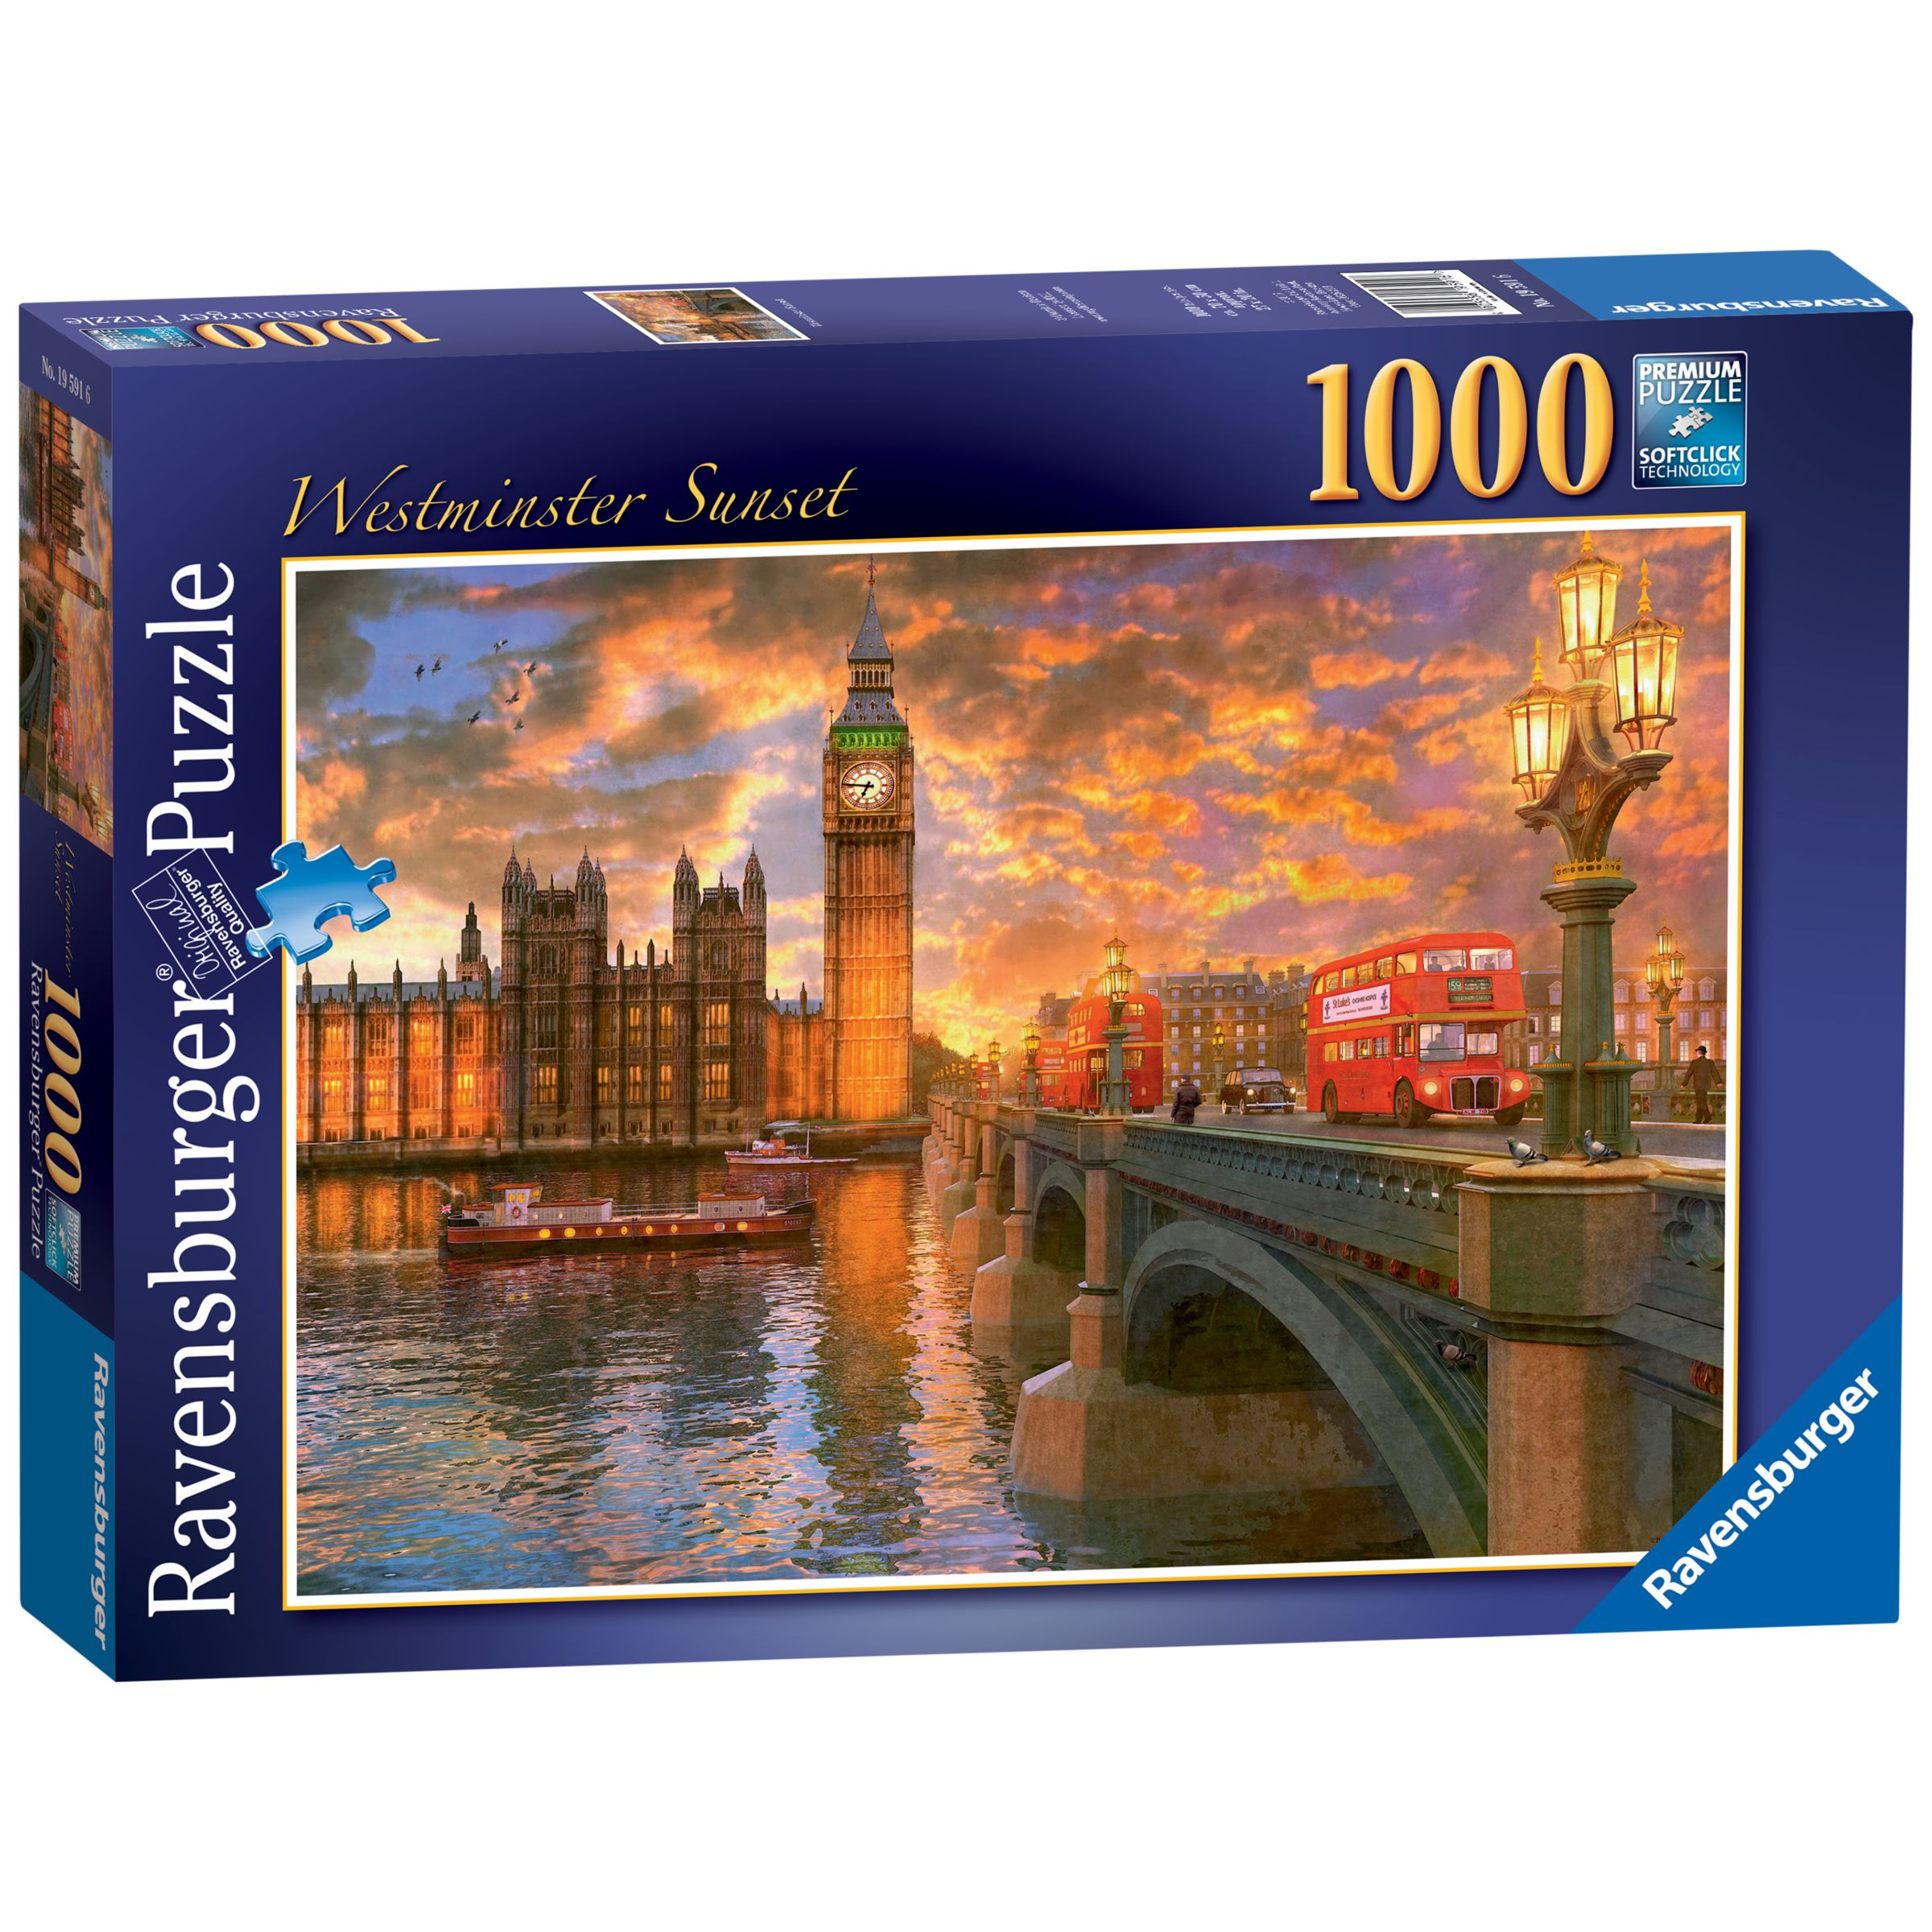 Ravensburger Ravensburger Westminster Sunset Jigsaw Puzzle, 1000 Pieces